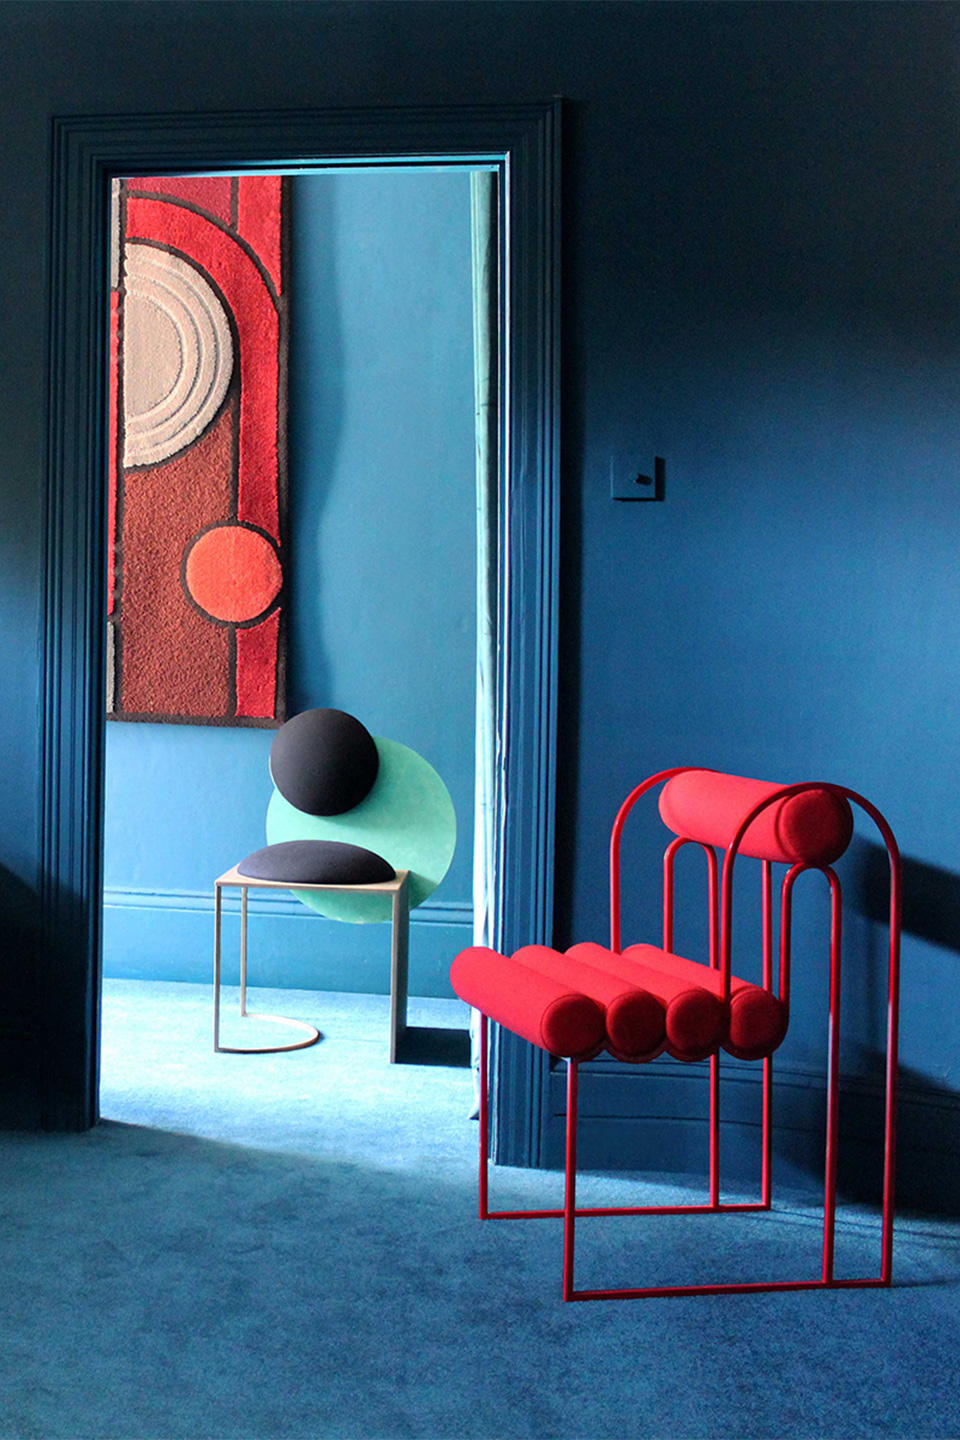 Lara Bohinc Designs Luxe Furniture with an Otherworldly Appeal